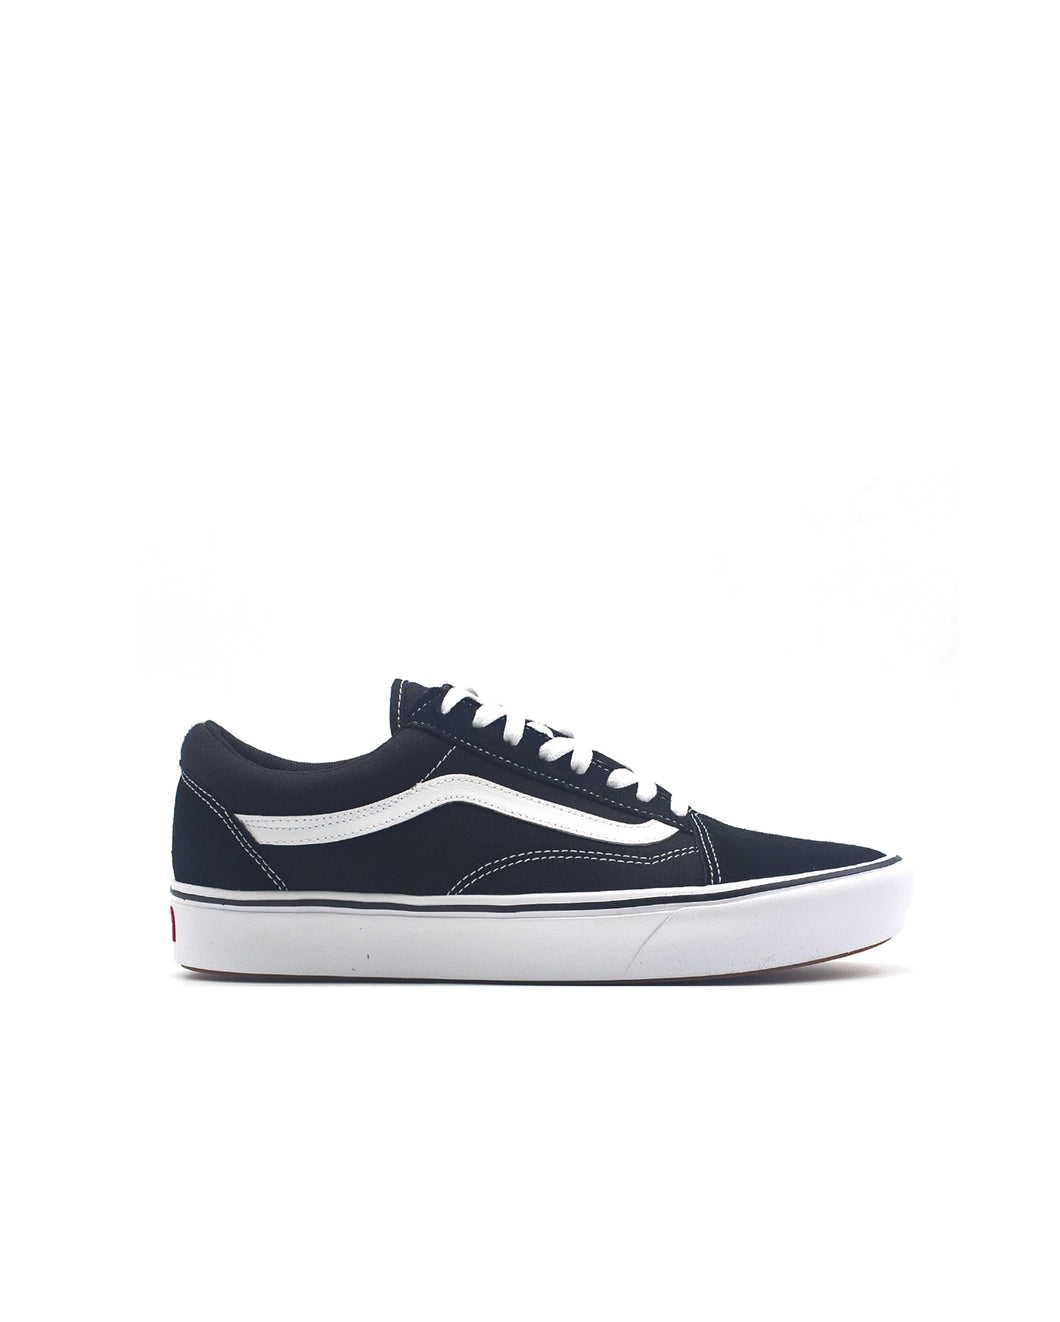 Vans Ua Comfycush Old Skool (Classic) Black